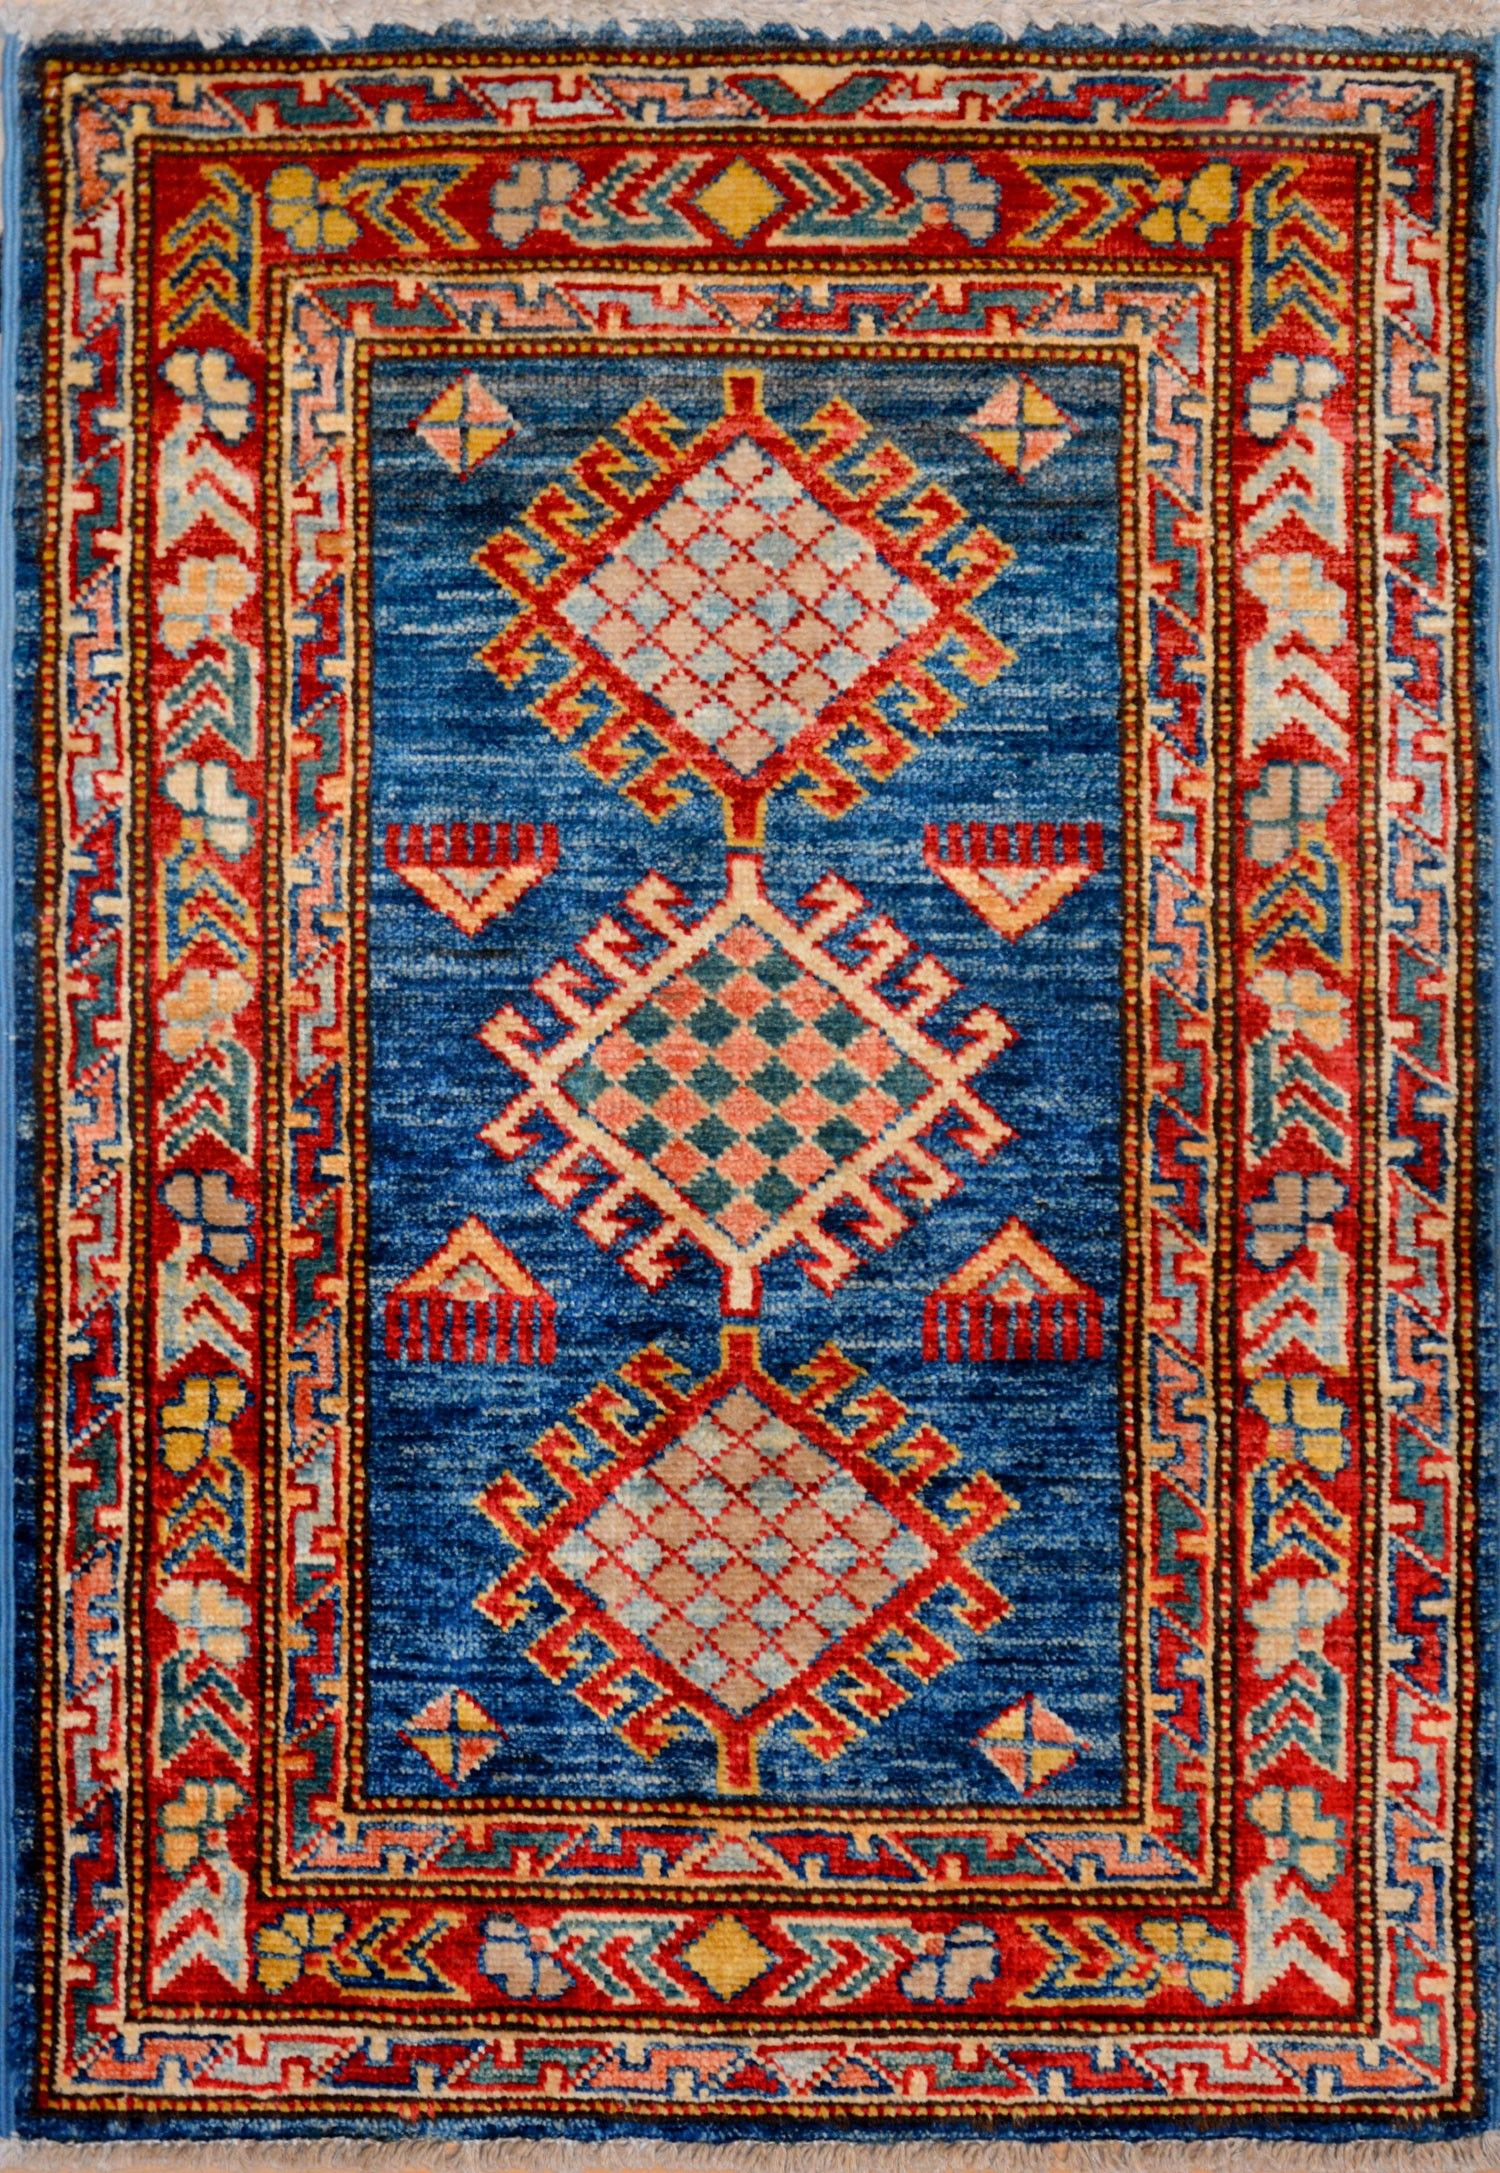 Blue Oriental Kazak Rug 1 11 X 2 9 Ft No 11535 Http Alrug Com Blue Oriental Kazak Rug 1 11 X 2 9 Ft No 11535 Html Rugs Rugs On Carpet Kazak Rug